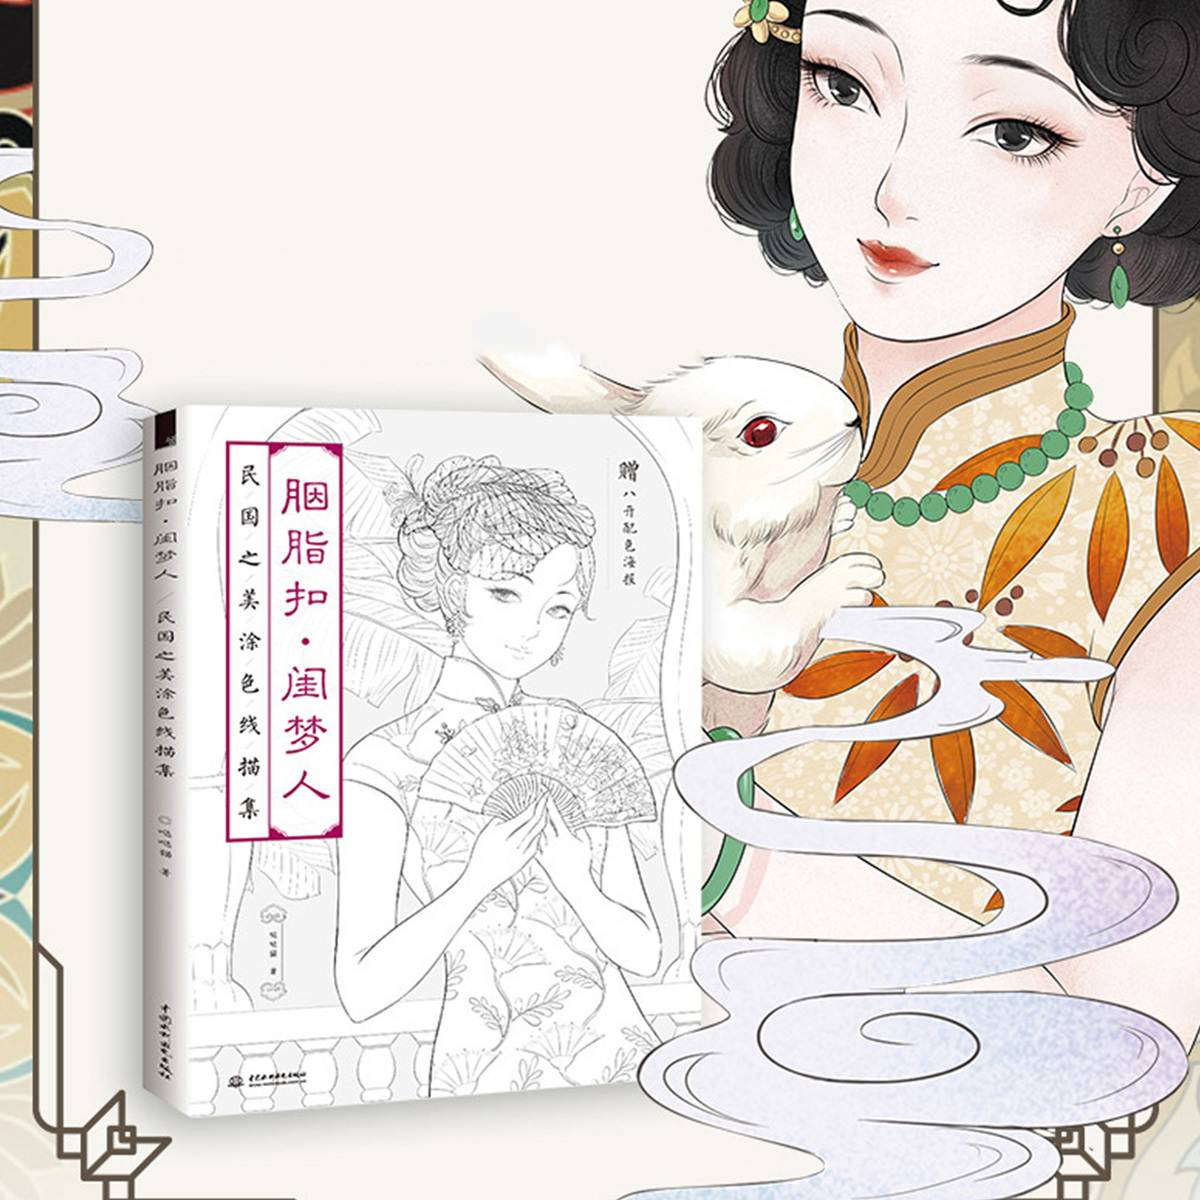 Zero-based Adults Hand-painted Coloring Book Classical Beauty Kids Anti-Stress Stress Relief Line Sketch Drawing BooksZero-based Adults Hand-painted Coloring Book Classical Beauty Kids Anti-Stress Stress Relief Line Sketch Drawing Books